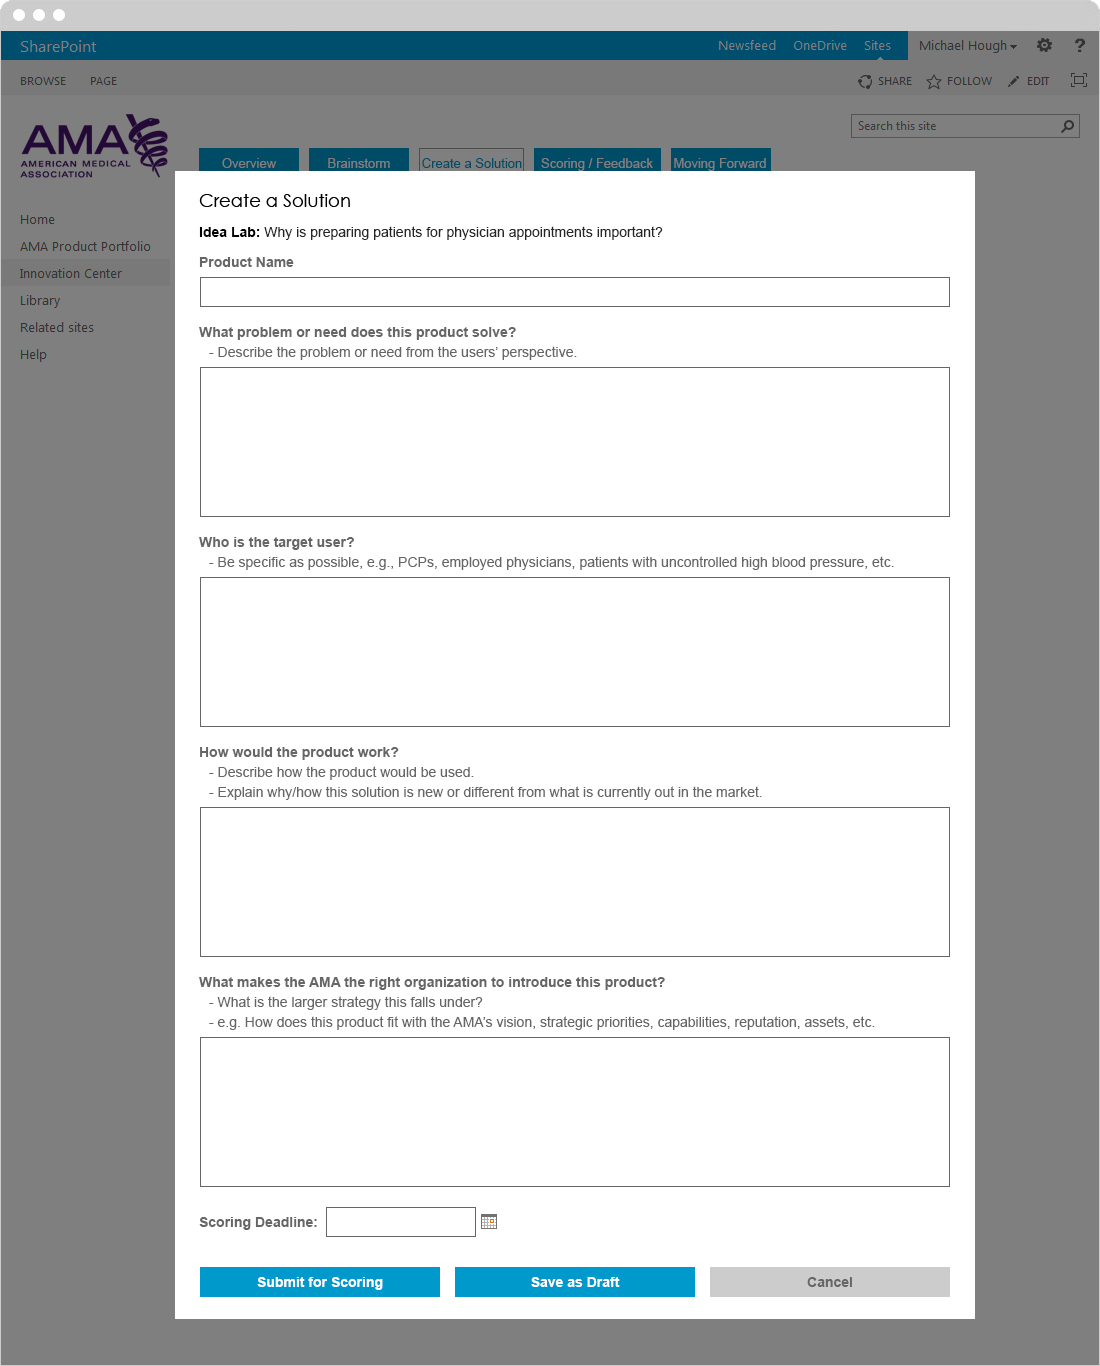 Create a Solution Form